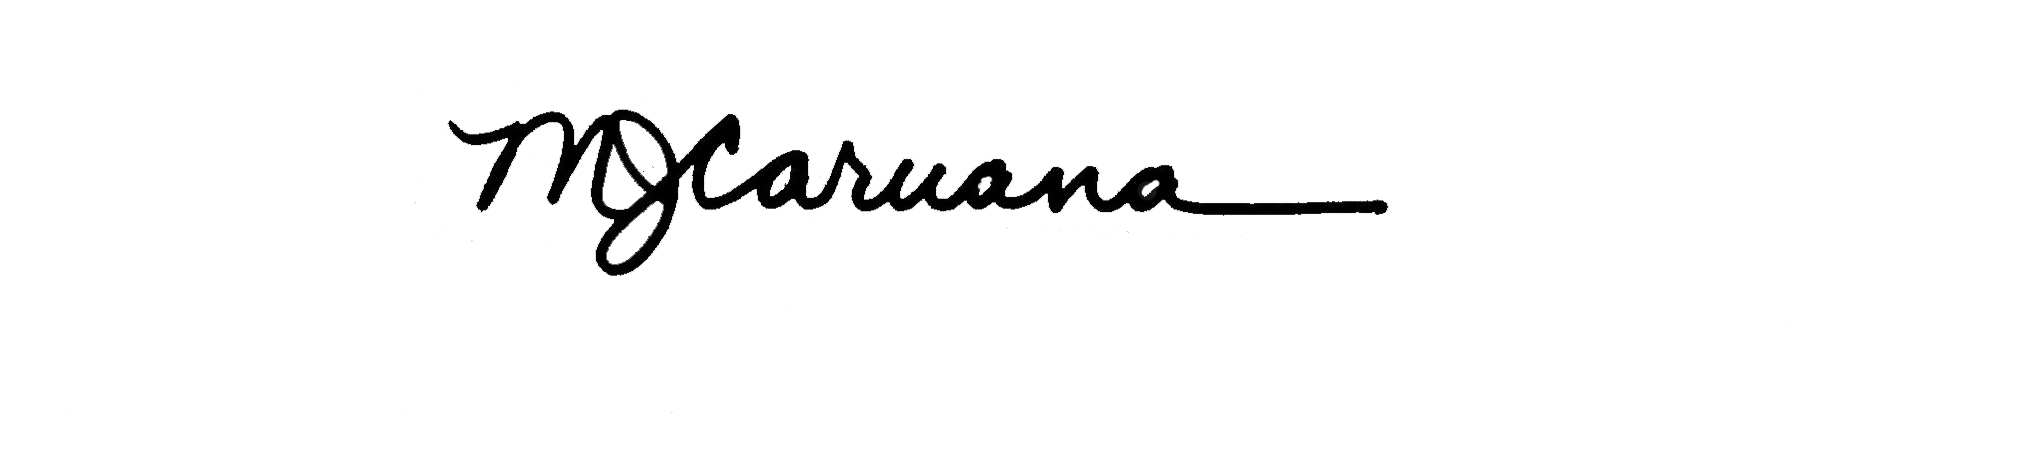 Mary Jo Caruana's Signature